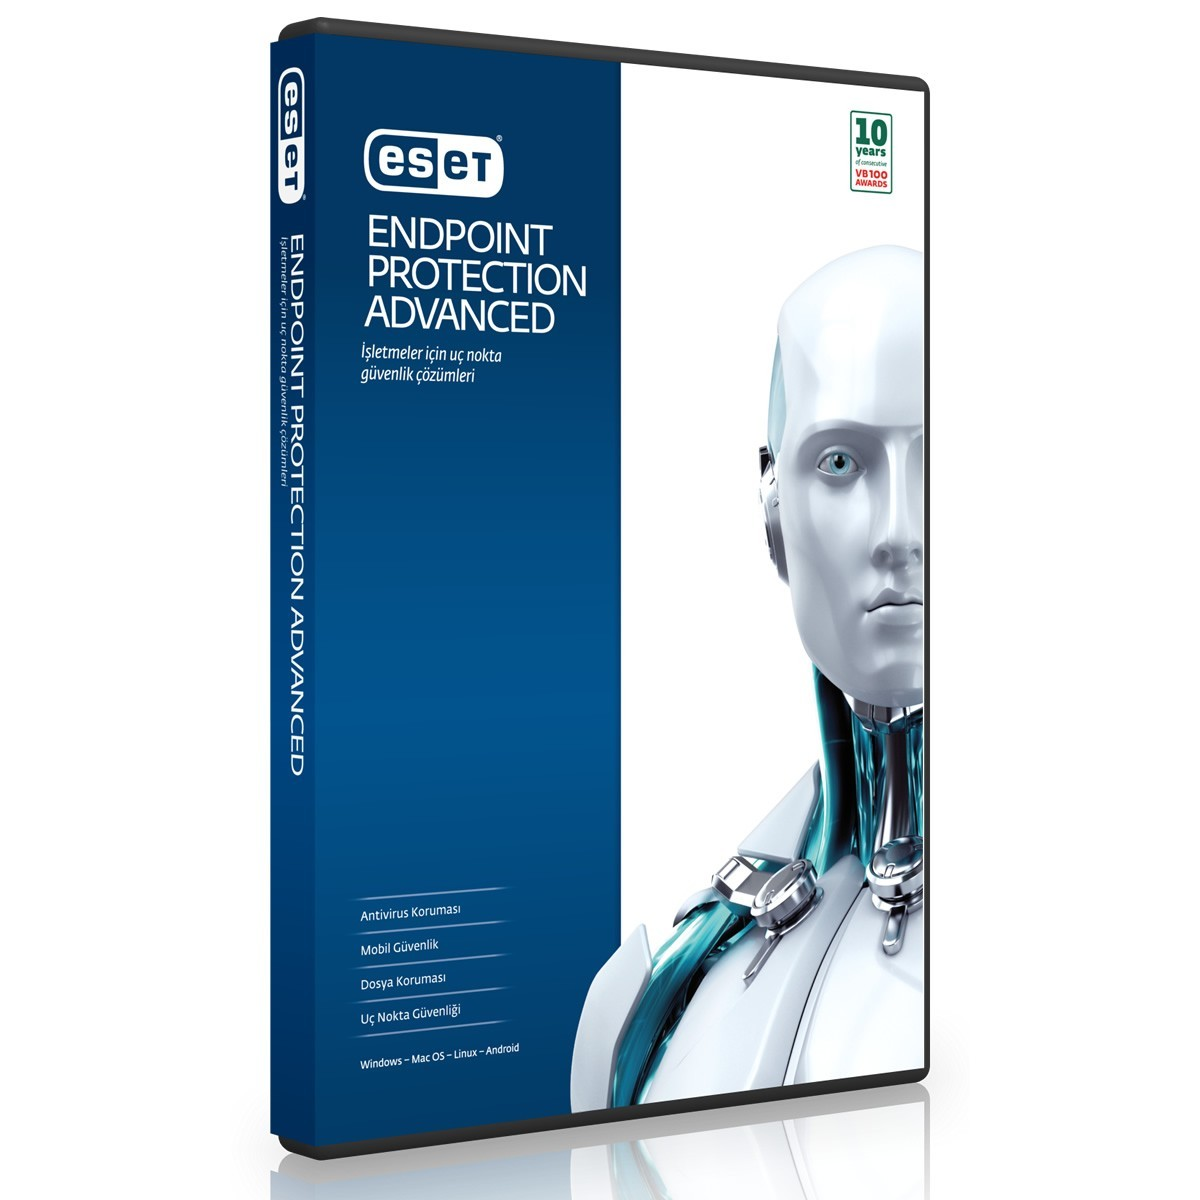 ESET NOD32 ENDPOINT PROTECTİON ADVANCED 1+ 20 KULLANICI 3 YIL